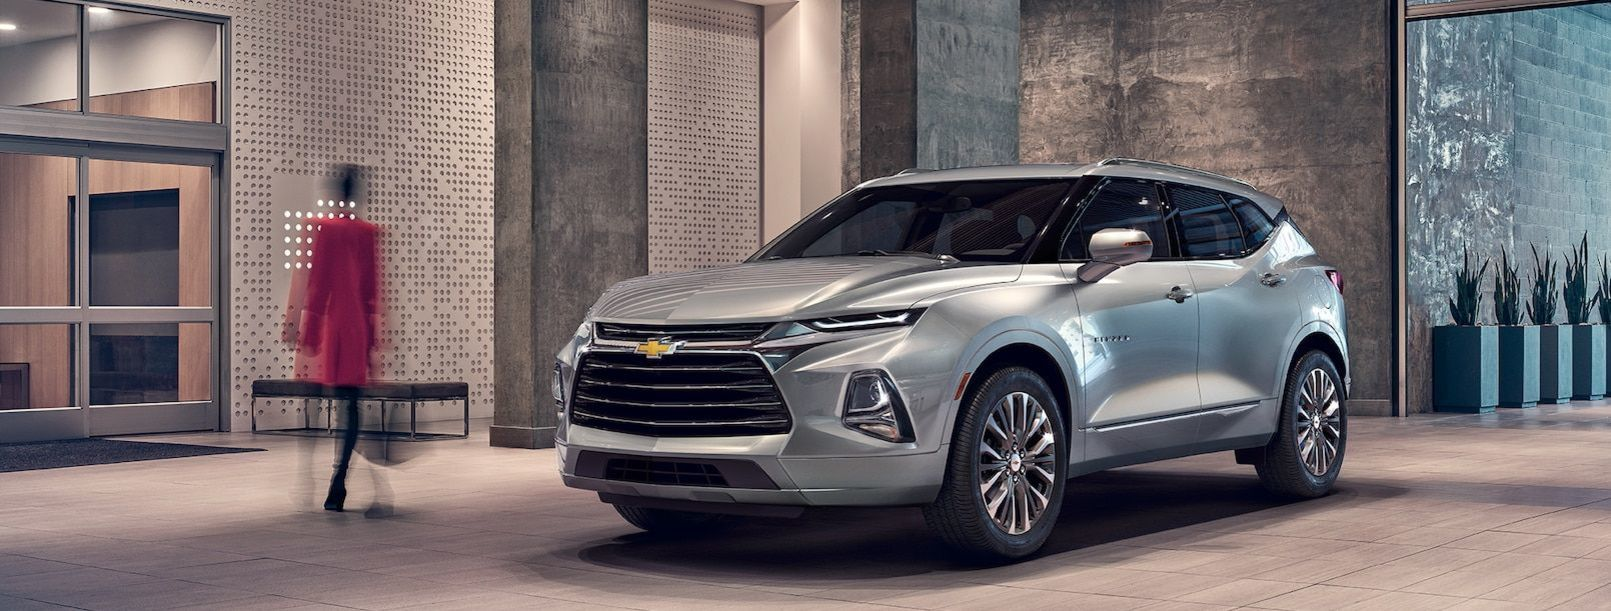 2019 Chevrolet Blazer Technology Features near Schererville, IN